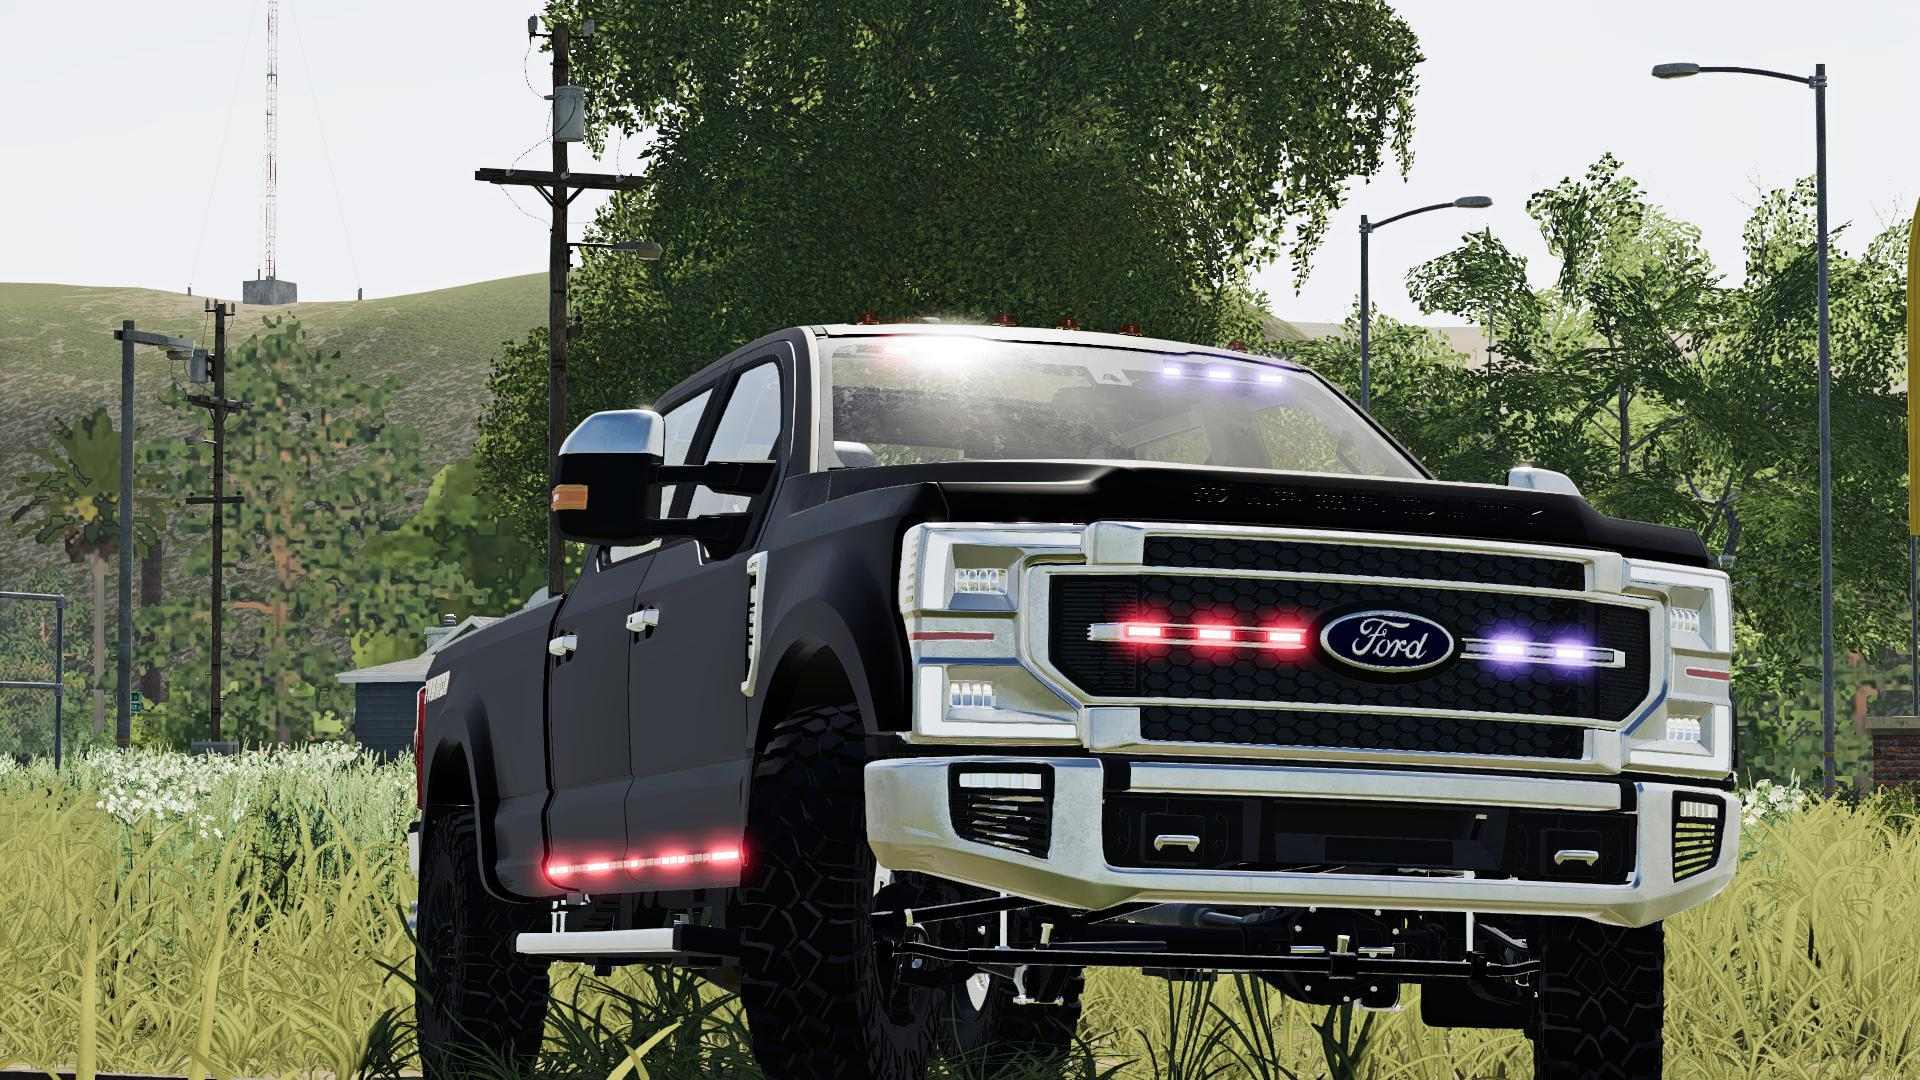 2020 FORD GHOST POLICE TRUCK V1.2.2.0